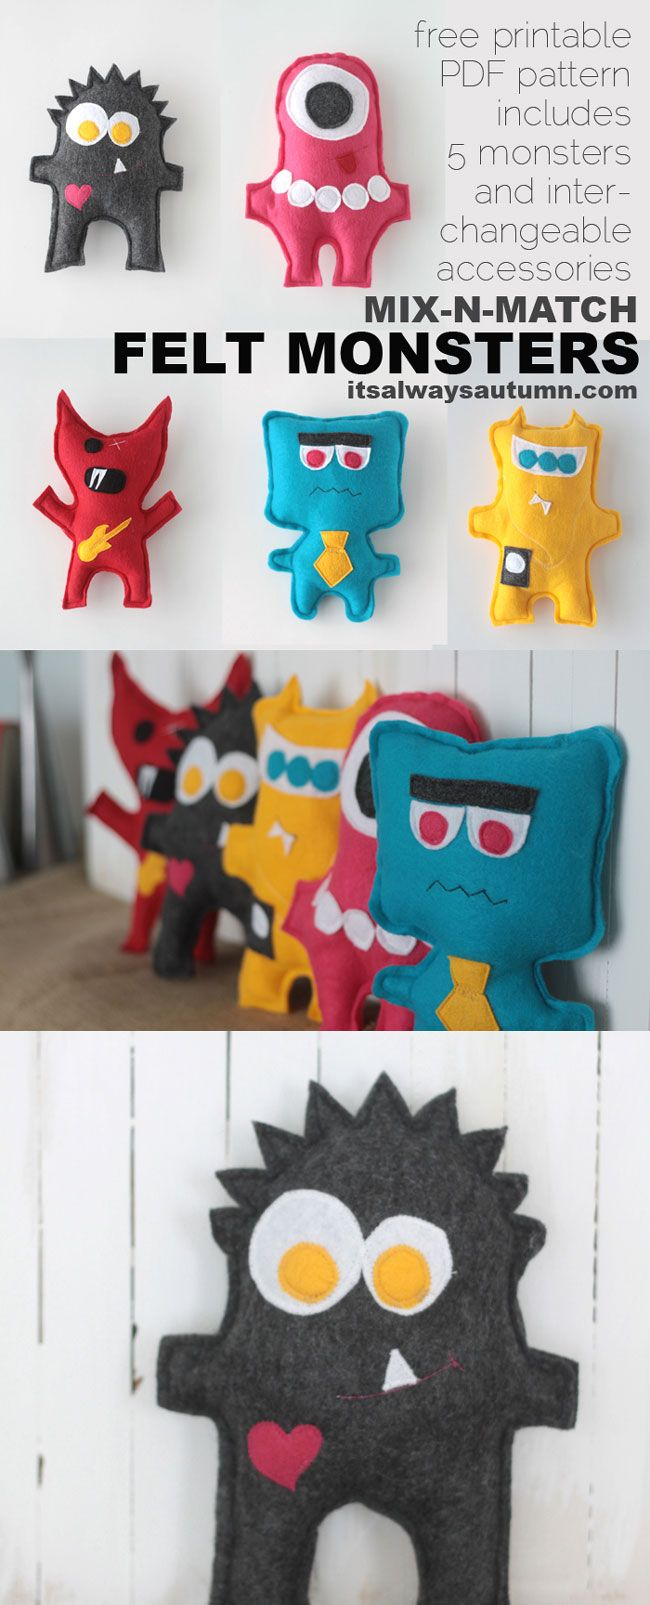 Make some adorable felt monsters with this free sewing pattern and tutorial. Great beginner sewing project for kids and fun summer activity! Get the felt monsters tutorial and the templates here. Get a weekly summary of new patterns sent to your inbox every Saturday: